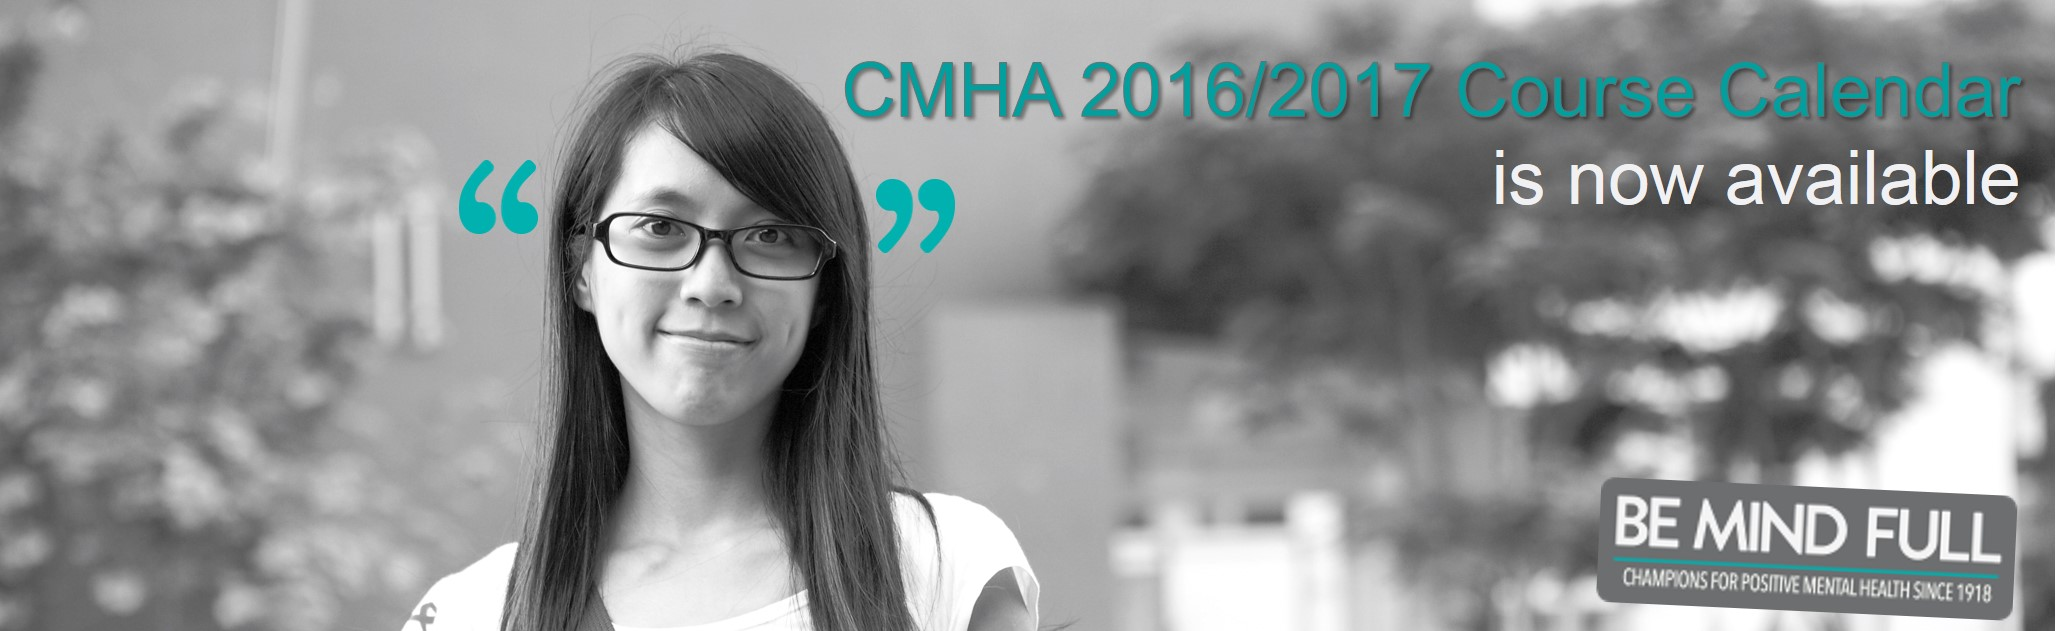 CMHA Manitoba and Winnipeg 2016 / 2017 Course Calendar Now Available